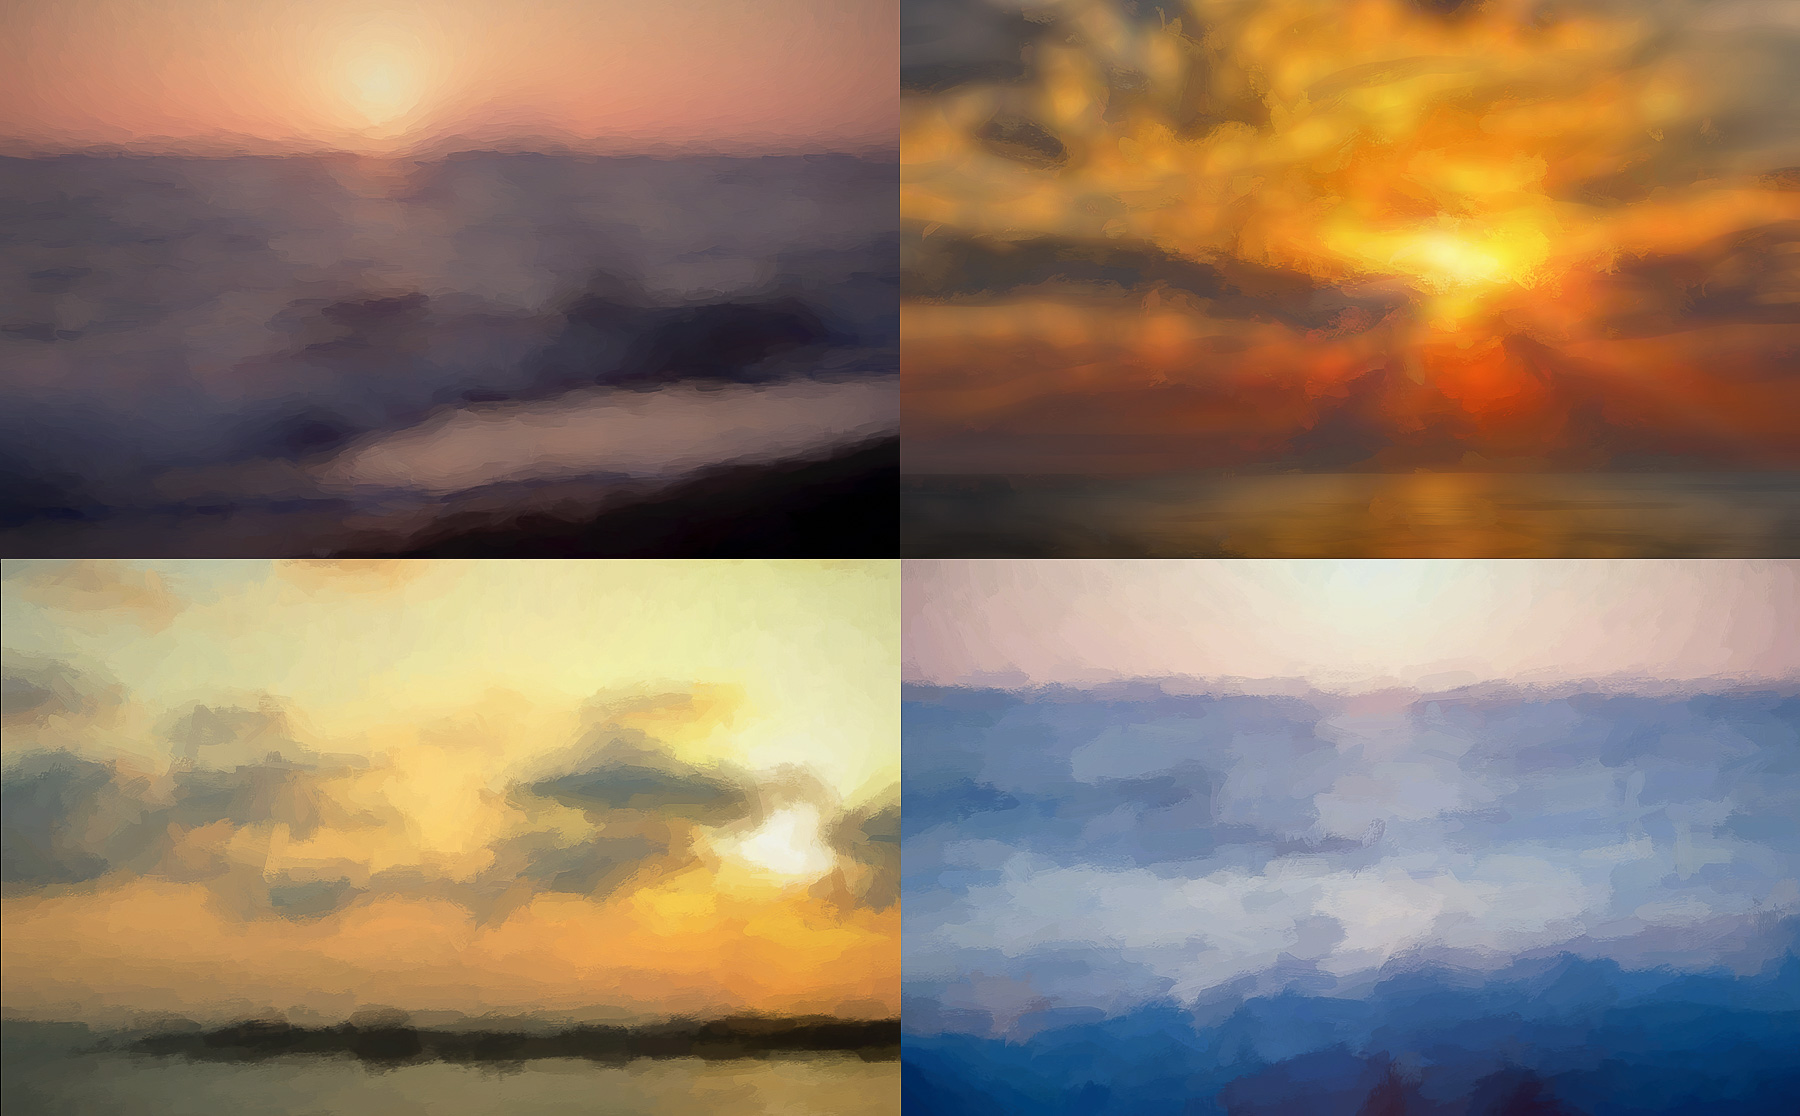 Scenic Backgrounds | Chalk Textures | Sketch Textures - premium and free artsy backgrounds from PixaFOTO Marketplace.